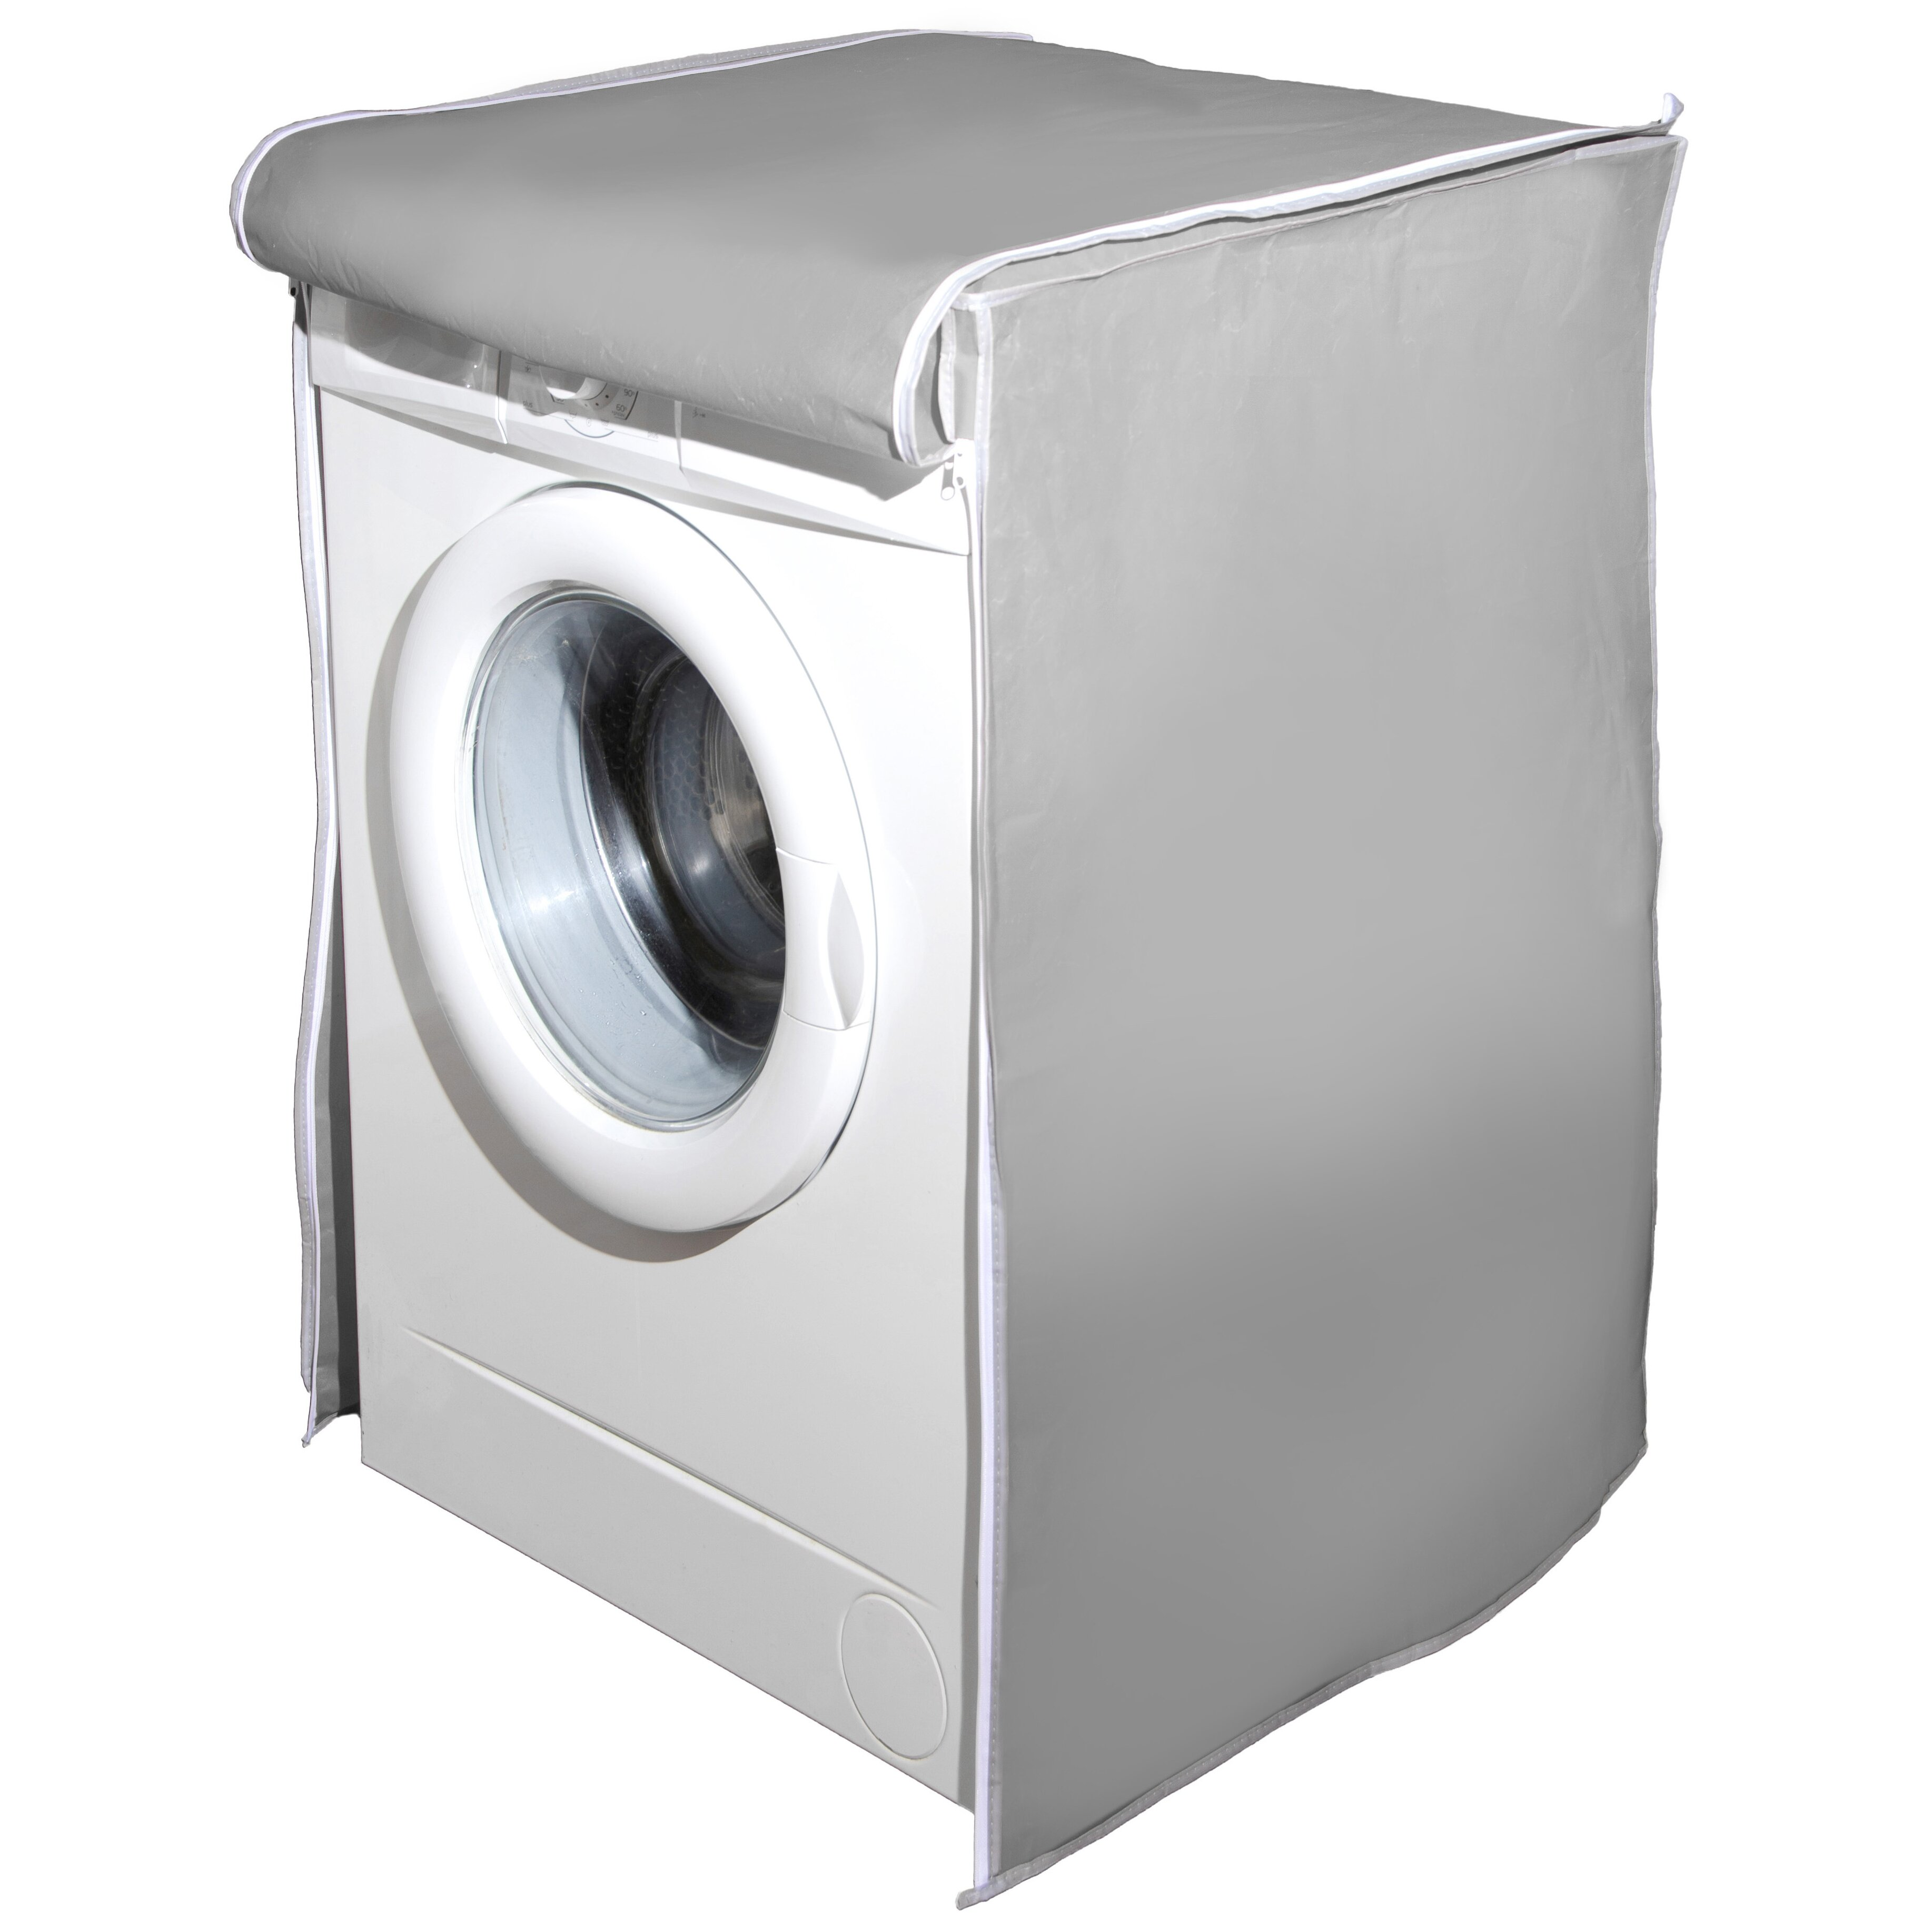 jocca washing machine cover reviews wayfair uk. Black Bedroom Furniture Sets. Home Design Ideas